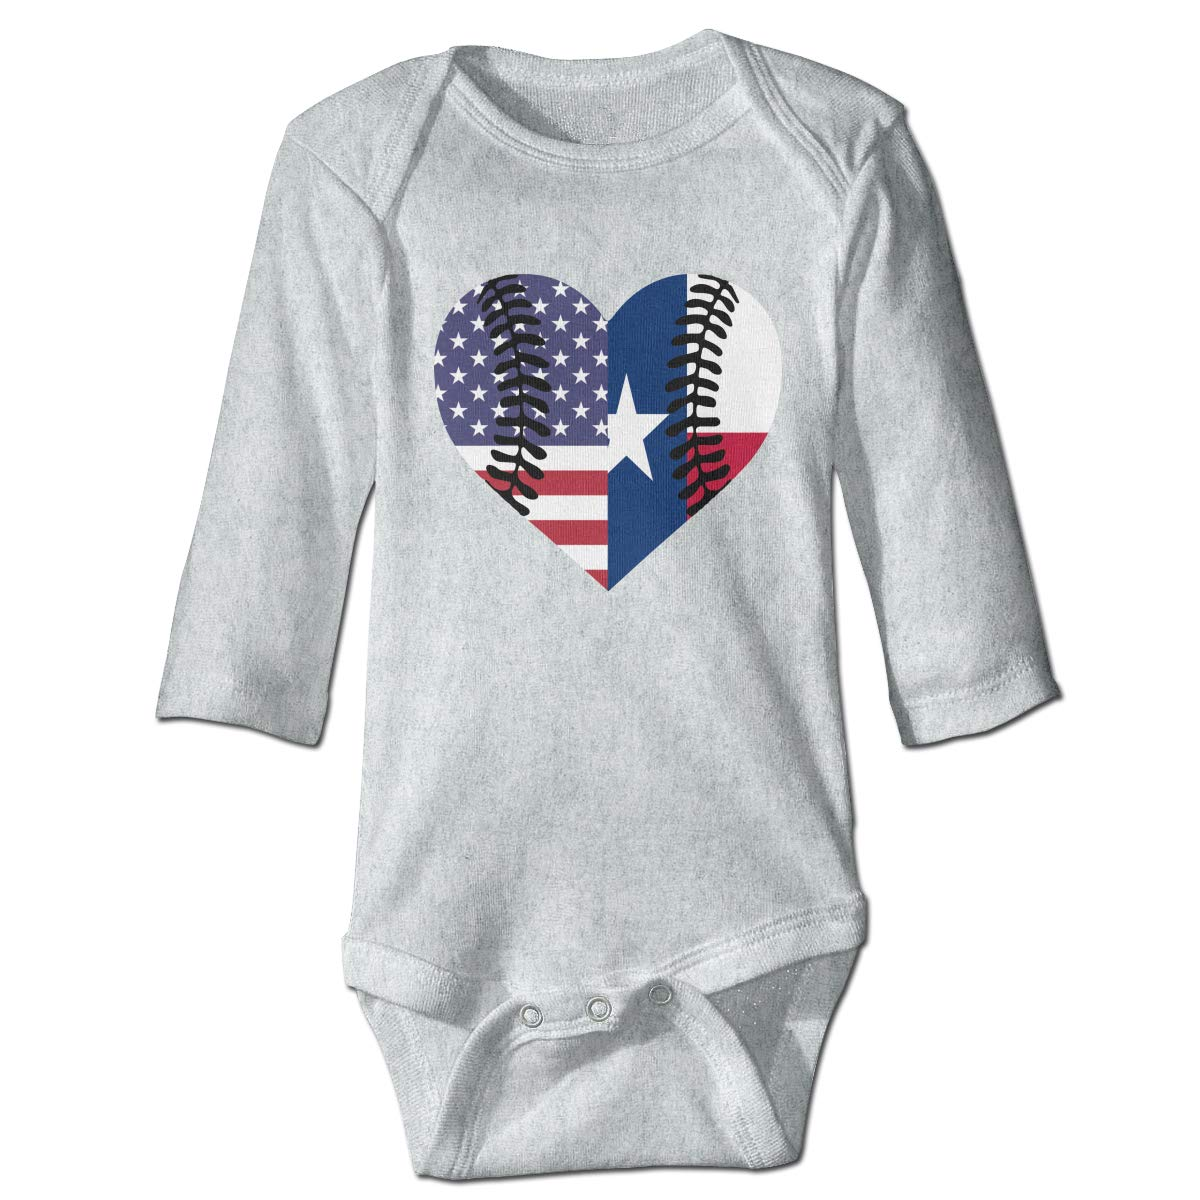 A14UBP Infant Baby Girls Long Sleeve Romper Bodysuit Texas USA Flag Half Baseball Unisex Button Playsuit Outfit Clothes